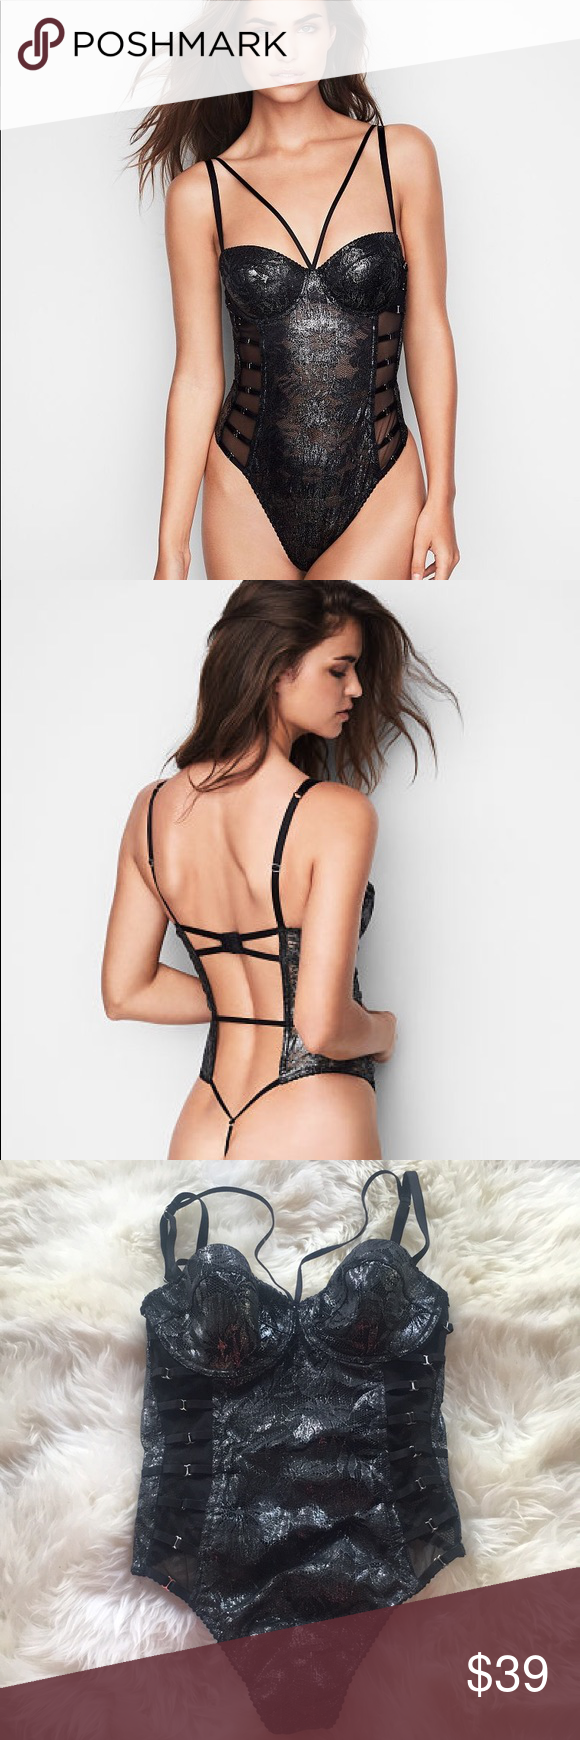 "fd537ade9a Victoria Secret Very Sexy Palm Lace Bodysuit This very sexy palm lace  bodysuit in ""black foil"" would look great in your next bundle!"